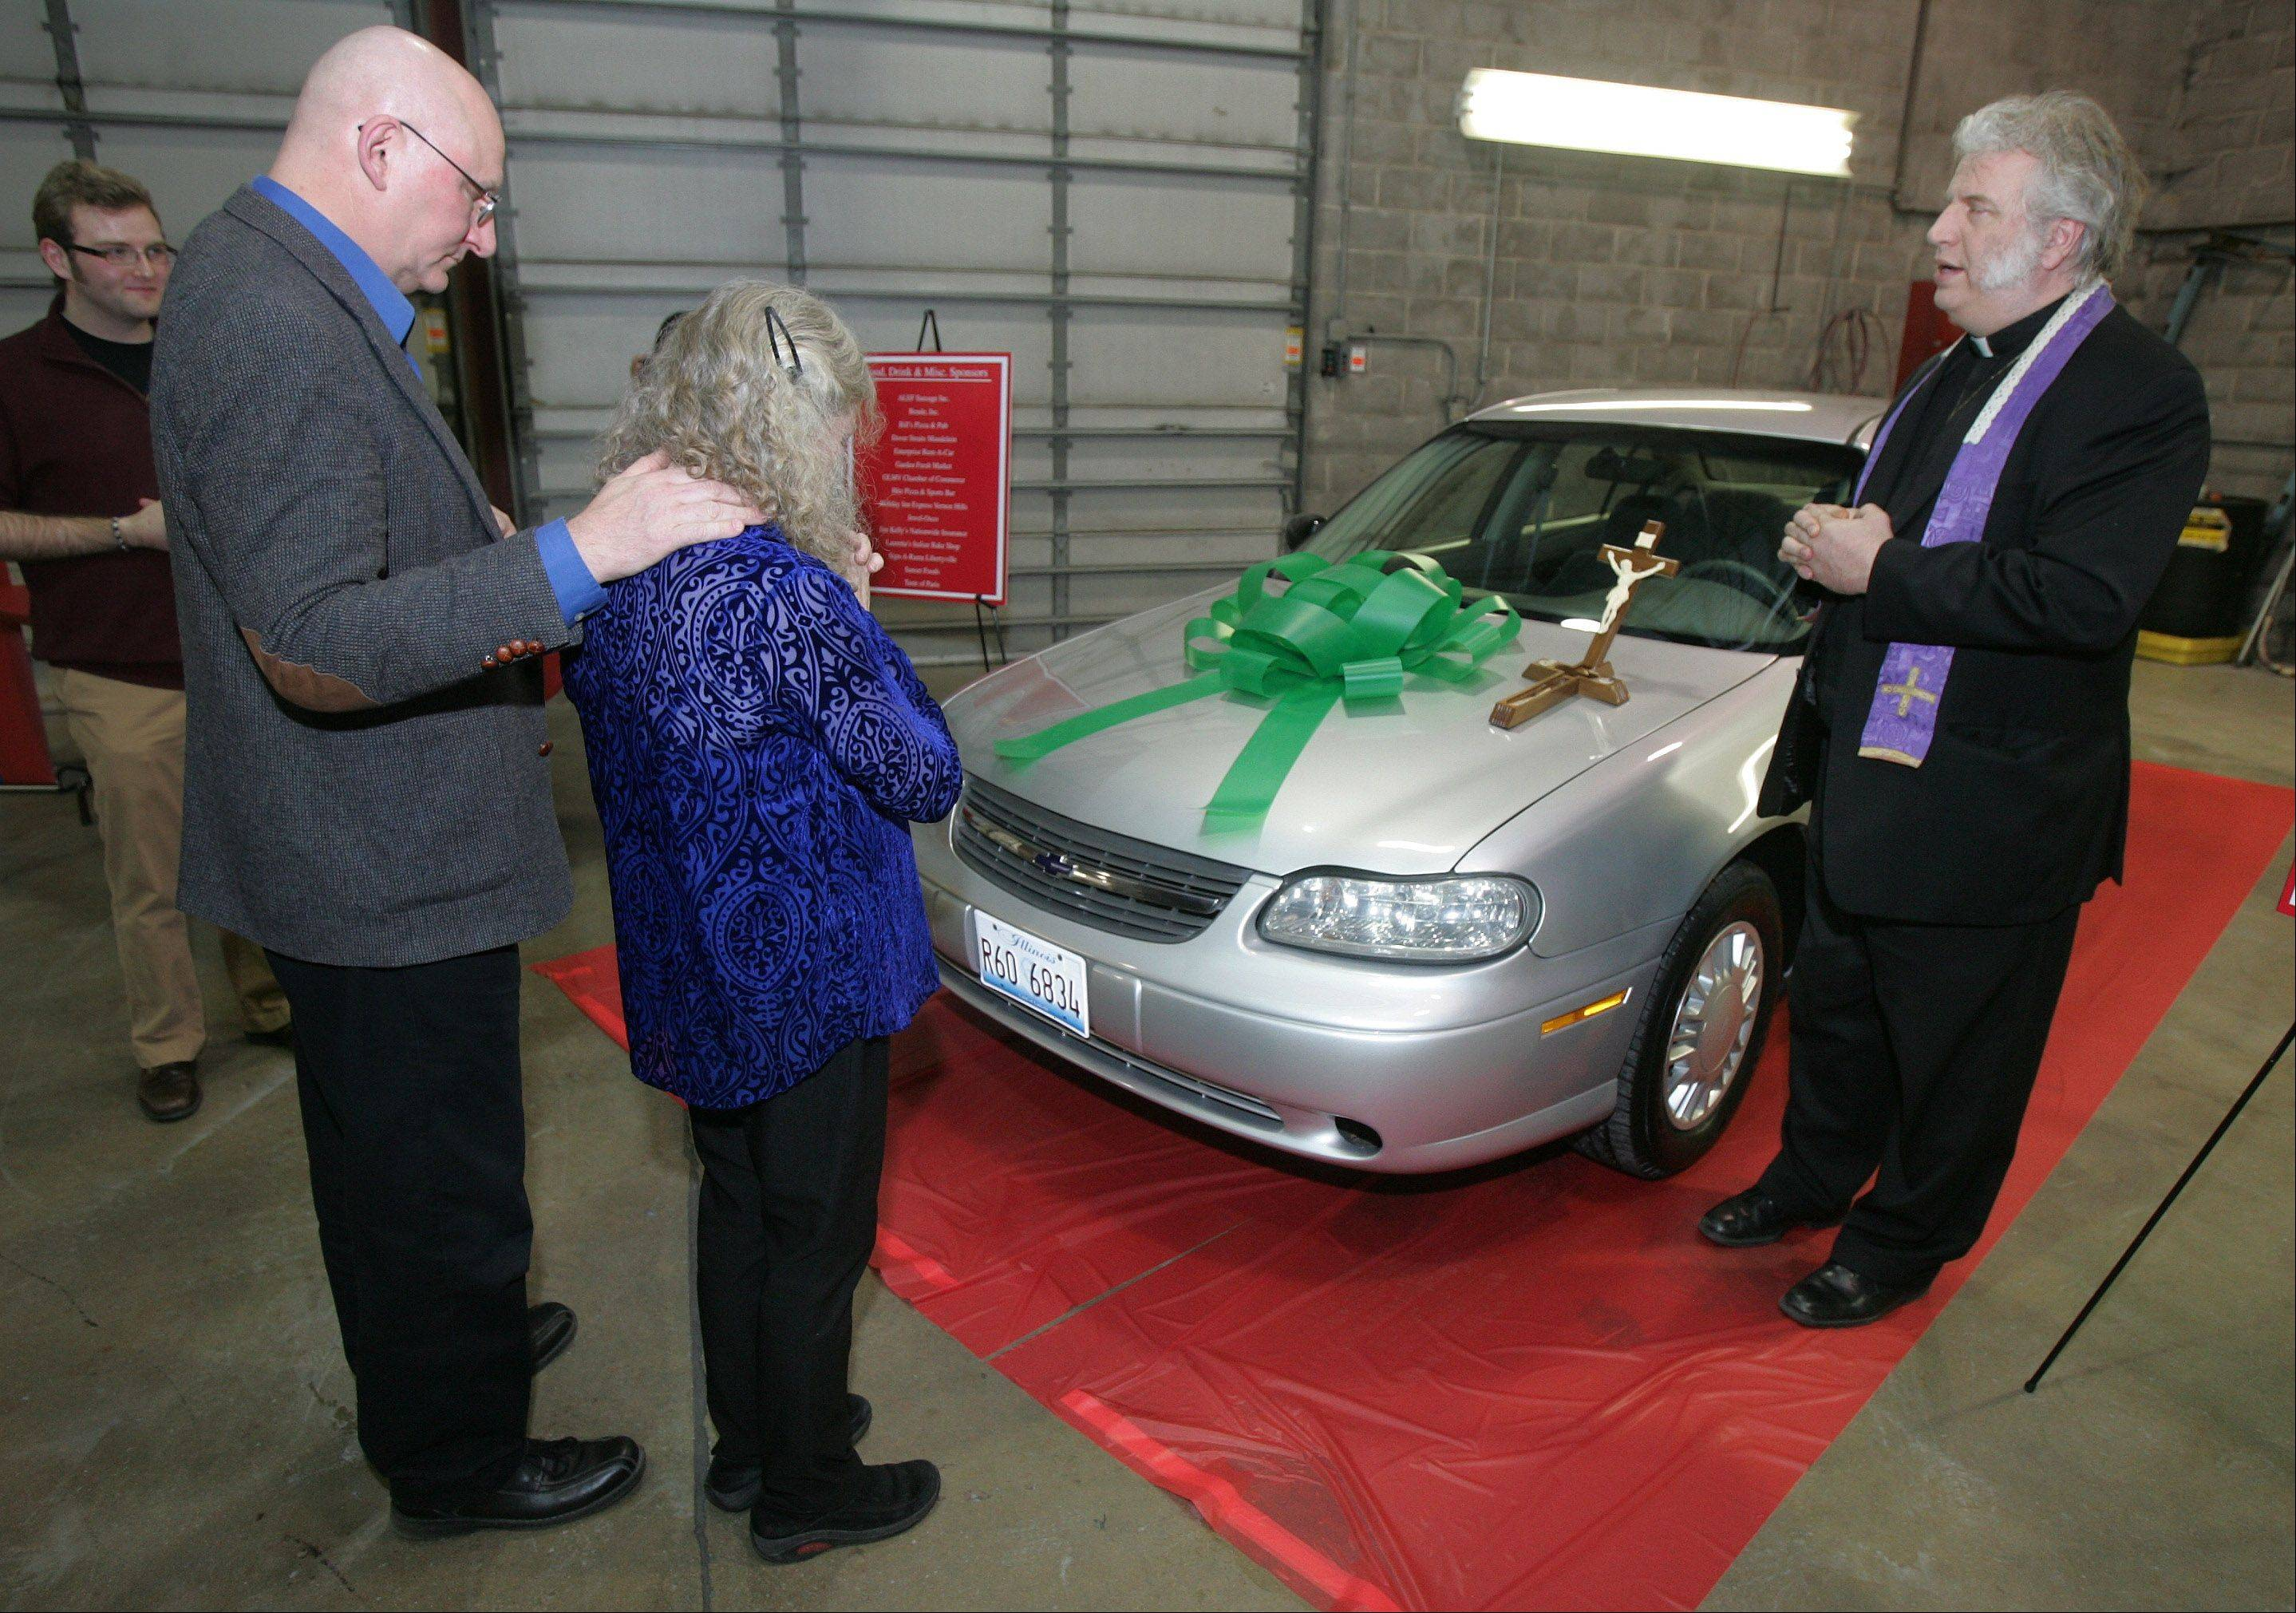 Gilbert R. Boucher II/gboucher@dailyherald.comGeoff and Marita Kovarik, of Mundelein, pray as the car they were given is blessed by Father Gerald O'Reilly Thursday as part of CARSTAR's 2nd Annual Recycled Rides Program. The Kovarik family were the recipients this year by the company that gives away a rebuilt car to a needy family for the holidays.